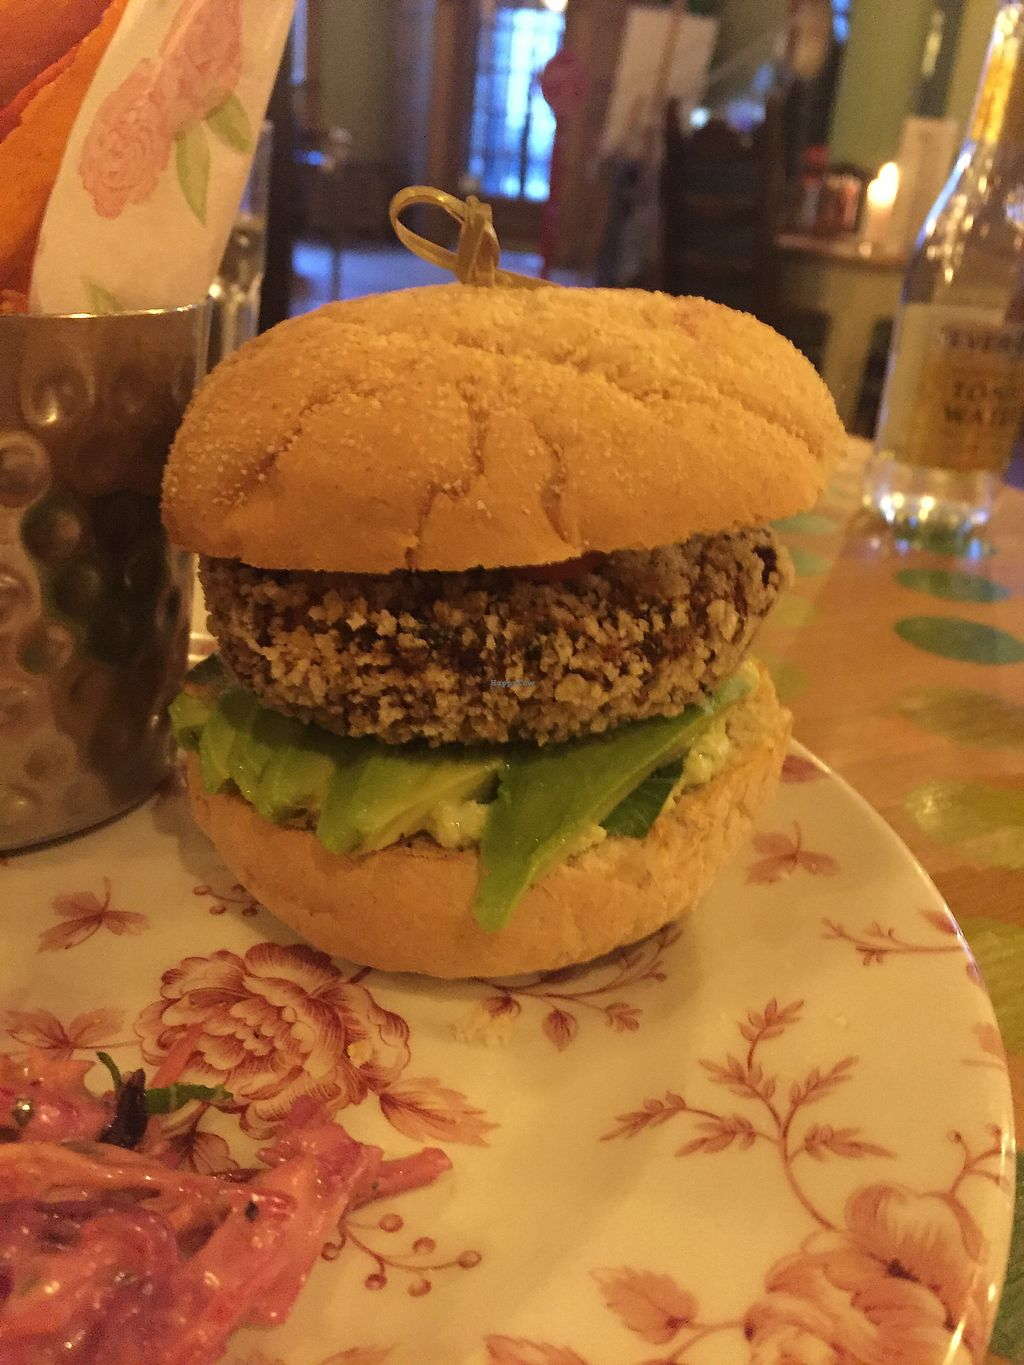 """Photo of The Cosy Club  by <a href=""""/members/profile/butternutsquashie"""">butternutsquashie</a> <br/>Thai burger  <br/> April 9, 2018  - <a href='/contact/abuse/image/98749/383048'>Report</a>"""